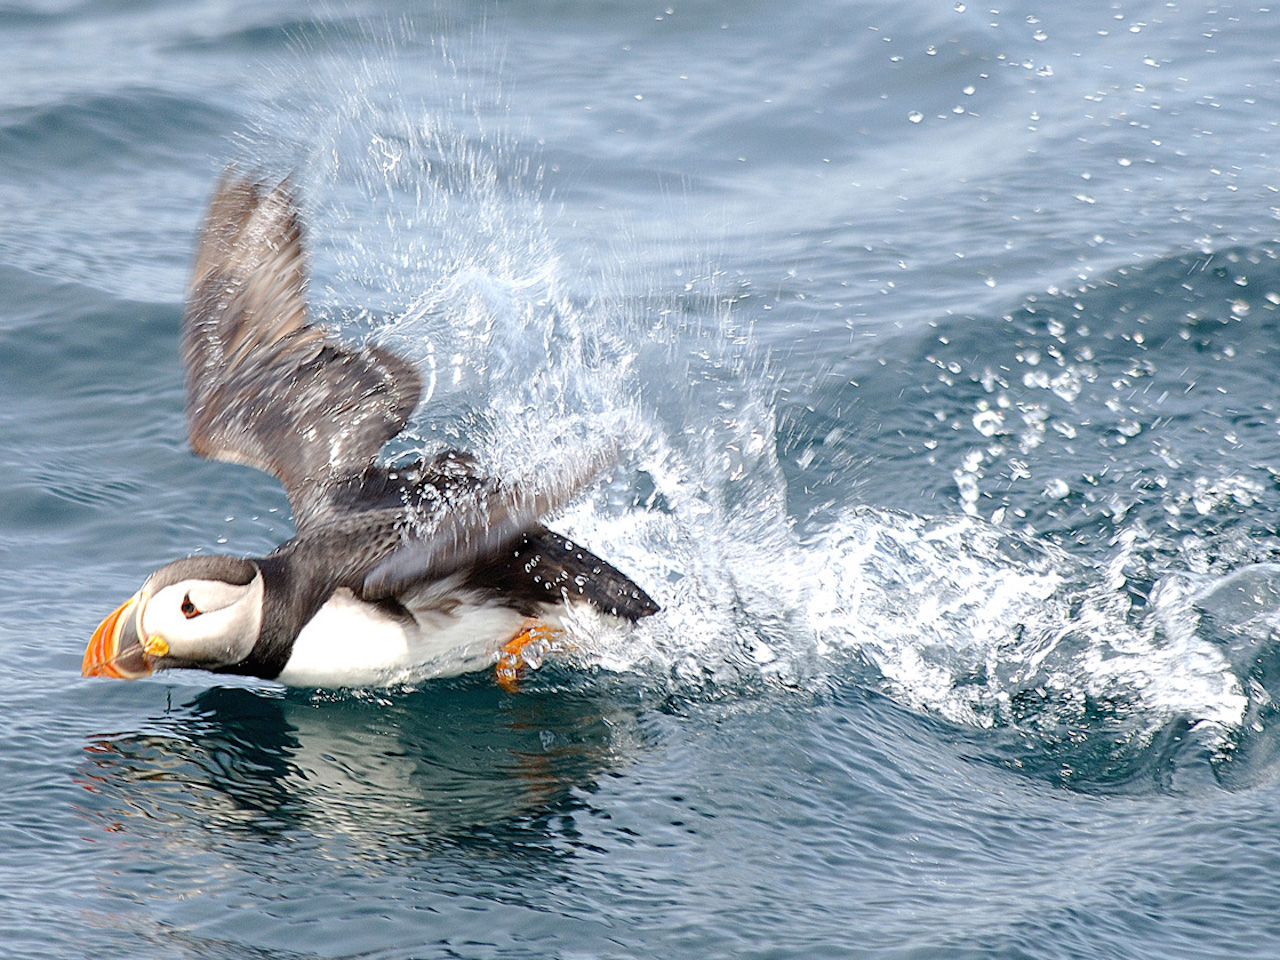 puffin swimming and splashing in the water